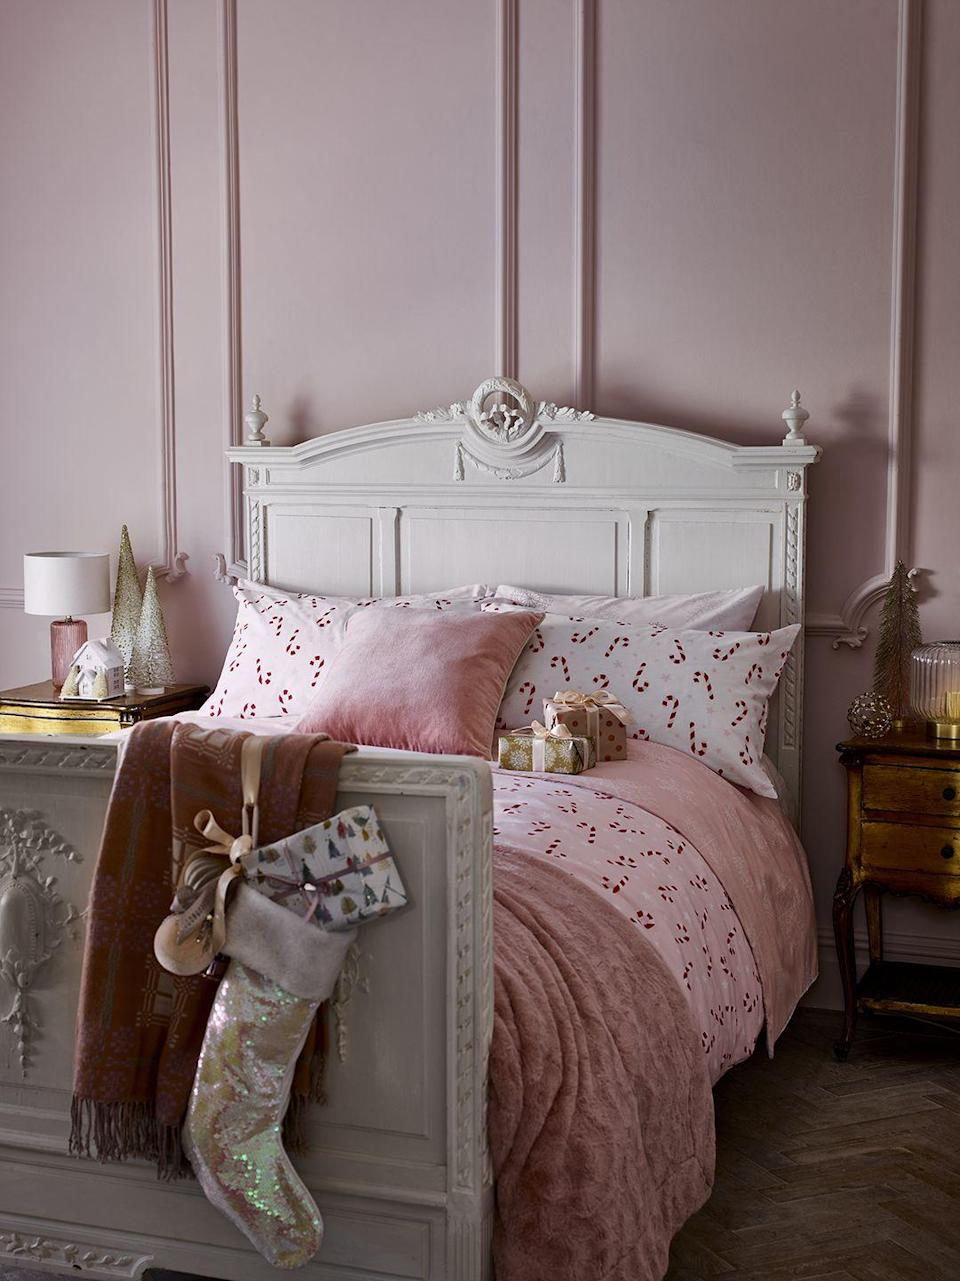 """<p>Searching for Christmas <a href=""""https://www.housebeautiful.com/uk/decorate/bedroom/g37103497/pink-grey-bedroom/"""" rel=""""nofollow noopener"""" target=""""_blank"""" data-ylk=""""slk:bedroom"""" class=""""link rapid-noclick-resp"""">bedroom</a> decor? Look no further than George Home's new collection, which has everything from candy cane duvet covers to tinsel polar bears to place on your bedside table. From subtle additions to all-out festive schemes, add some holiday cheer to your <a href=""""https://www.housebeautiful.com/uk/lifestyle/a36981564/reclaim-sleep/"""" rel=""""nofollow noopener"""" target=""""_blank"""" data-ylk=""""slk:sleep"""" class=""""link rapid-noclick-resp"""">sleep</a> space. </p><p><strong>READ MORE</strong>: <a href=""""https://www.housebeautiful.com/uk/decorate/bedroom/a34973955/christmas-bedroom-decor/"""" rel=""""nofollow noopener"""" target=""""_blank"""" data-ylk=""""slk:8 easy ways to make your bedroom feel festive"""" class=""""link rapid-noclick-resp"""">8 easy ways to make your bedroom feel festive</a></p>"""